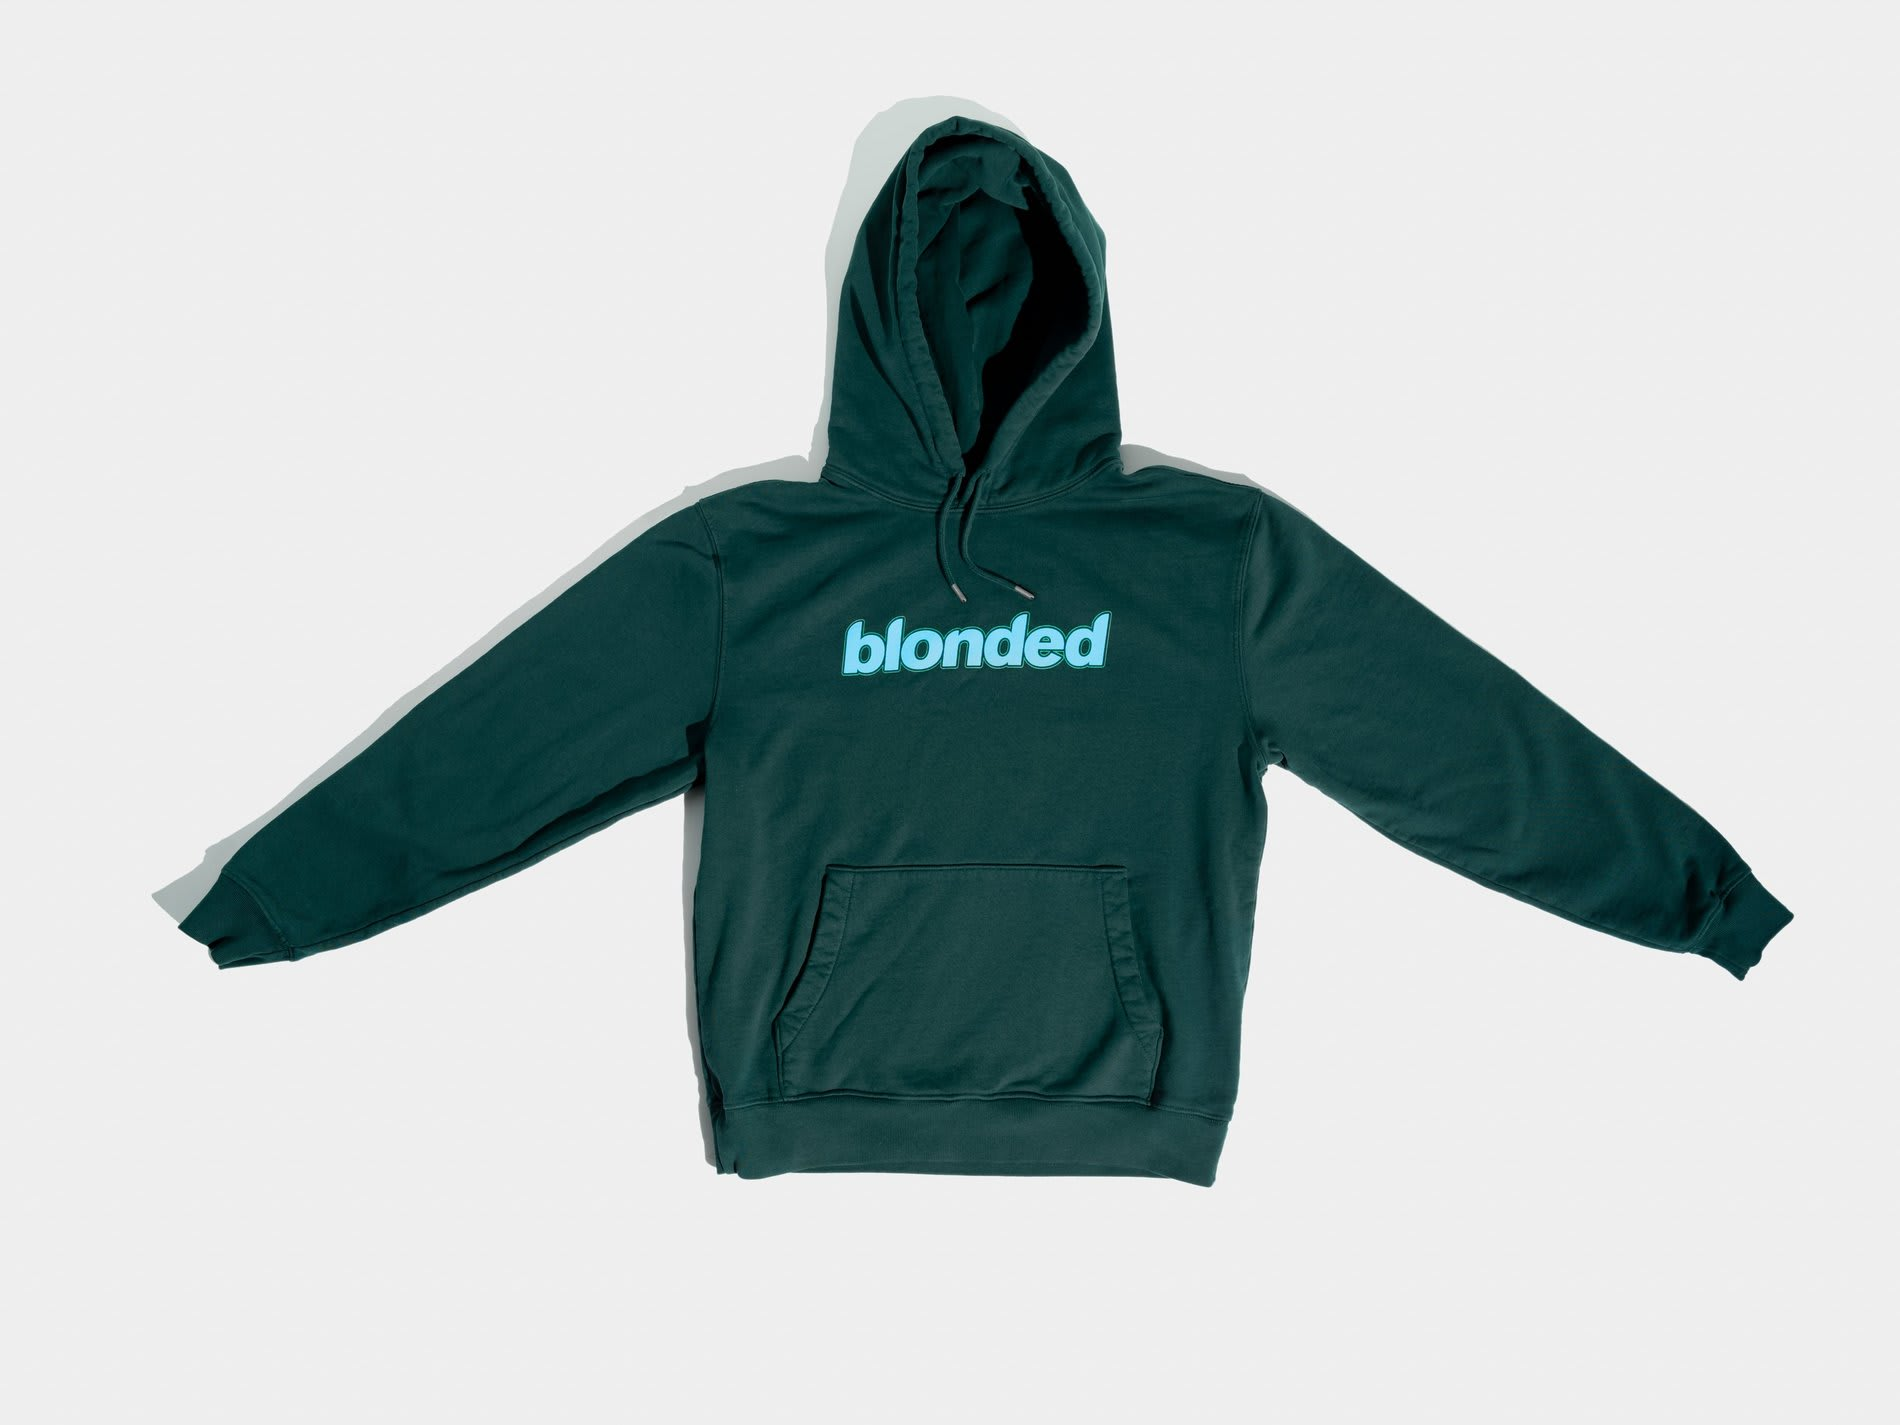 Complex Best Style Releases Blonded Hoodie by Frank Ocean